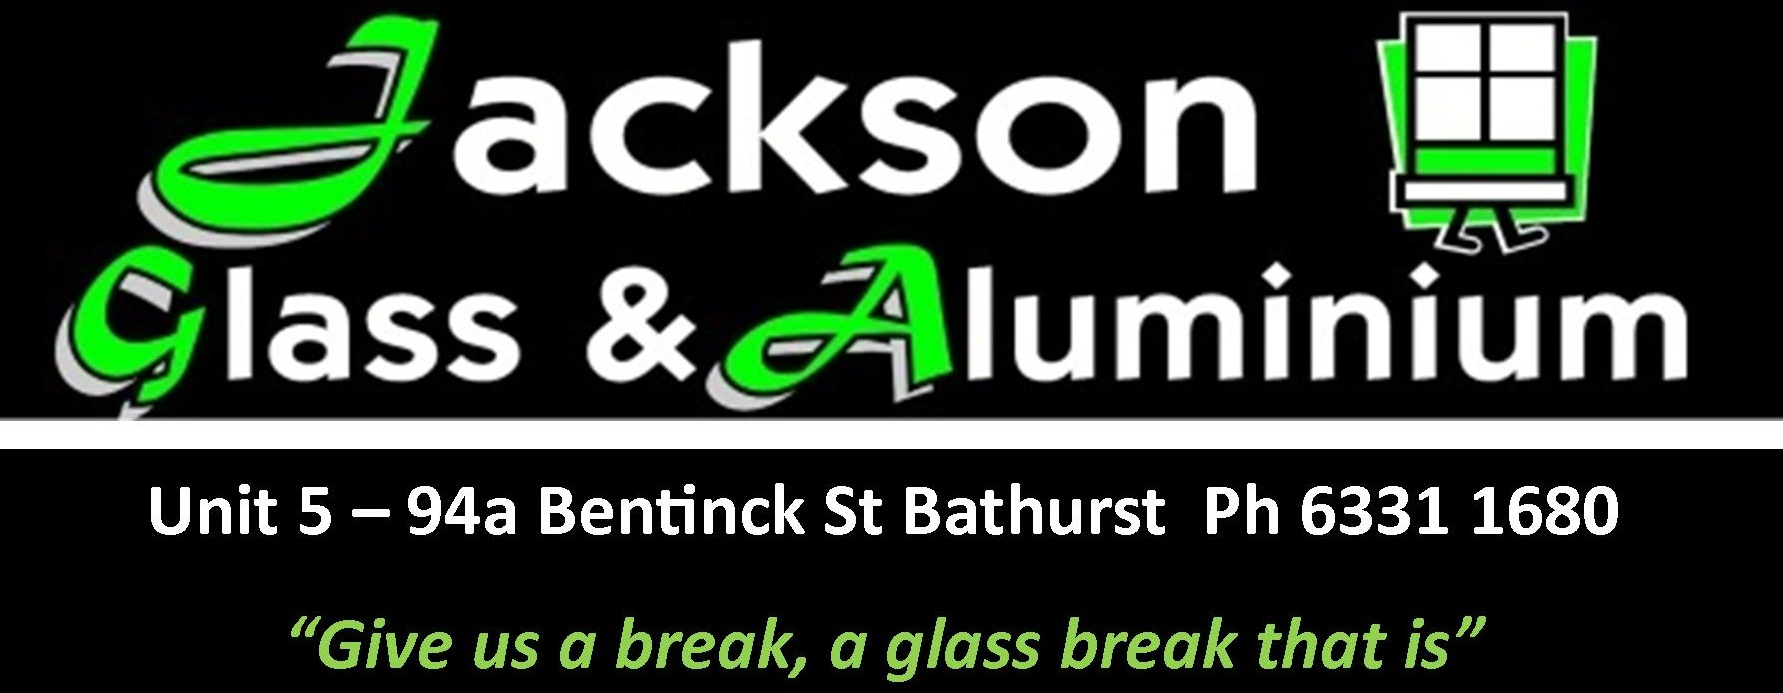 Jackson Glass and Aluminium